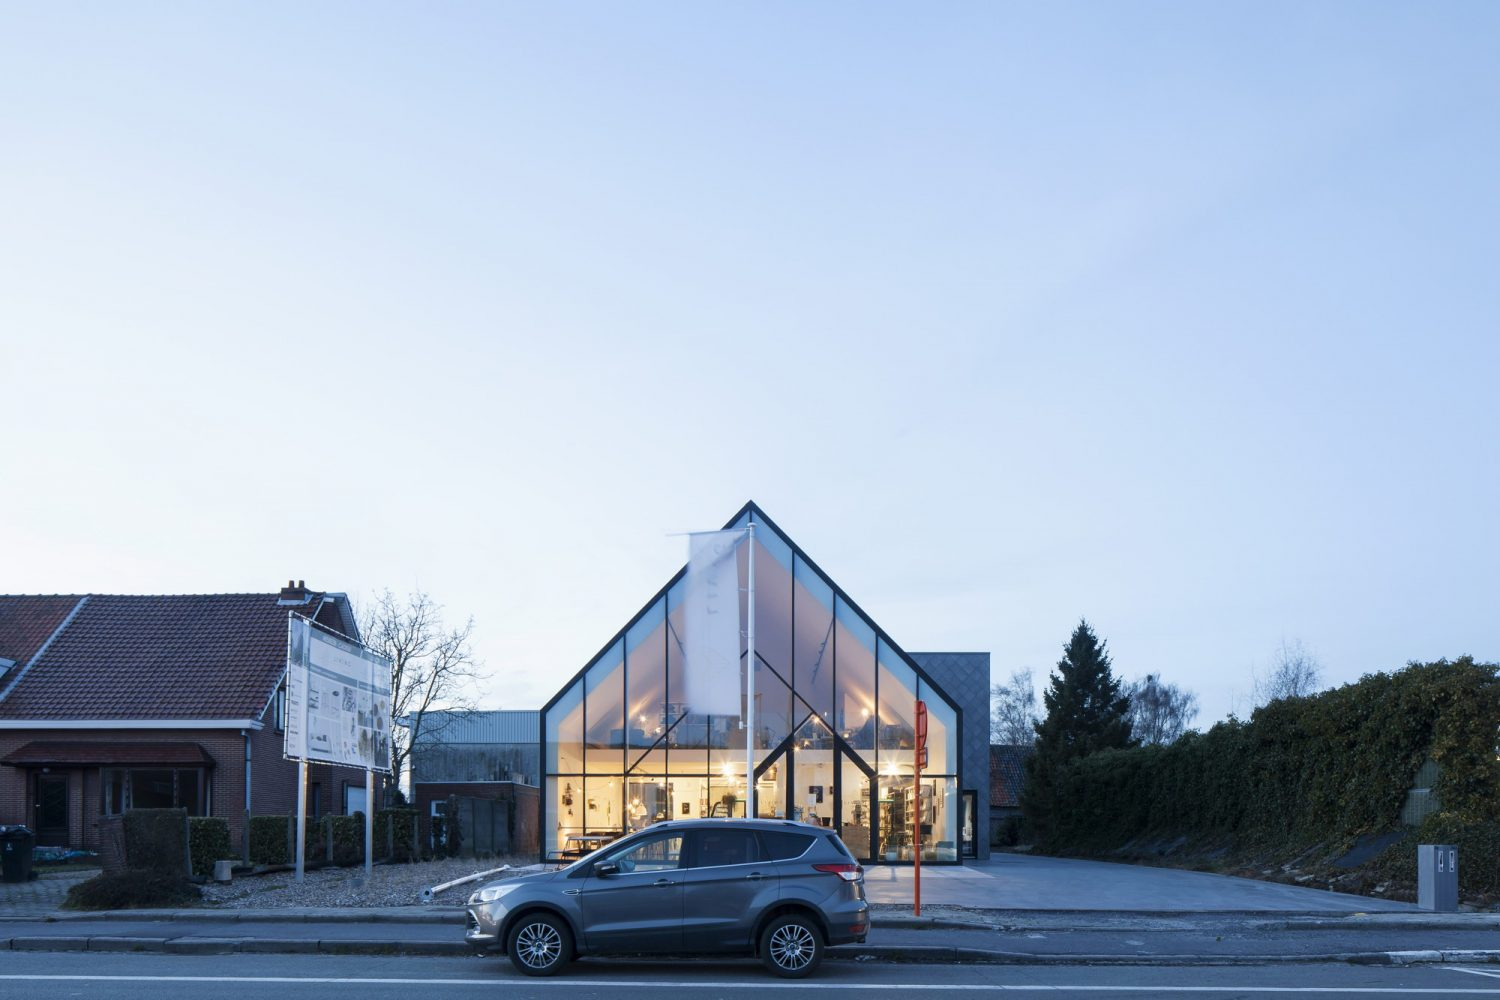 Drongen Furniture Store by WE-S architecten